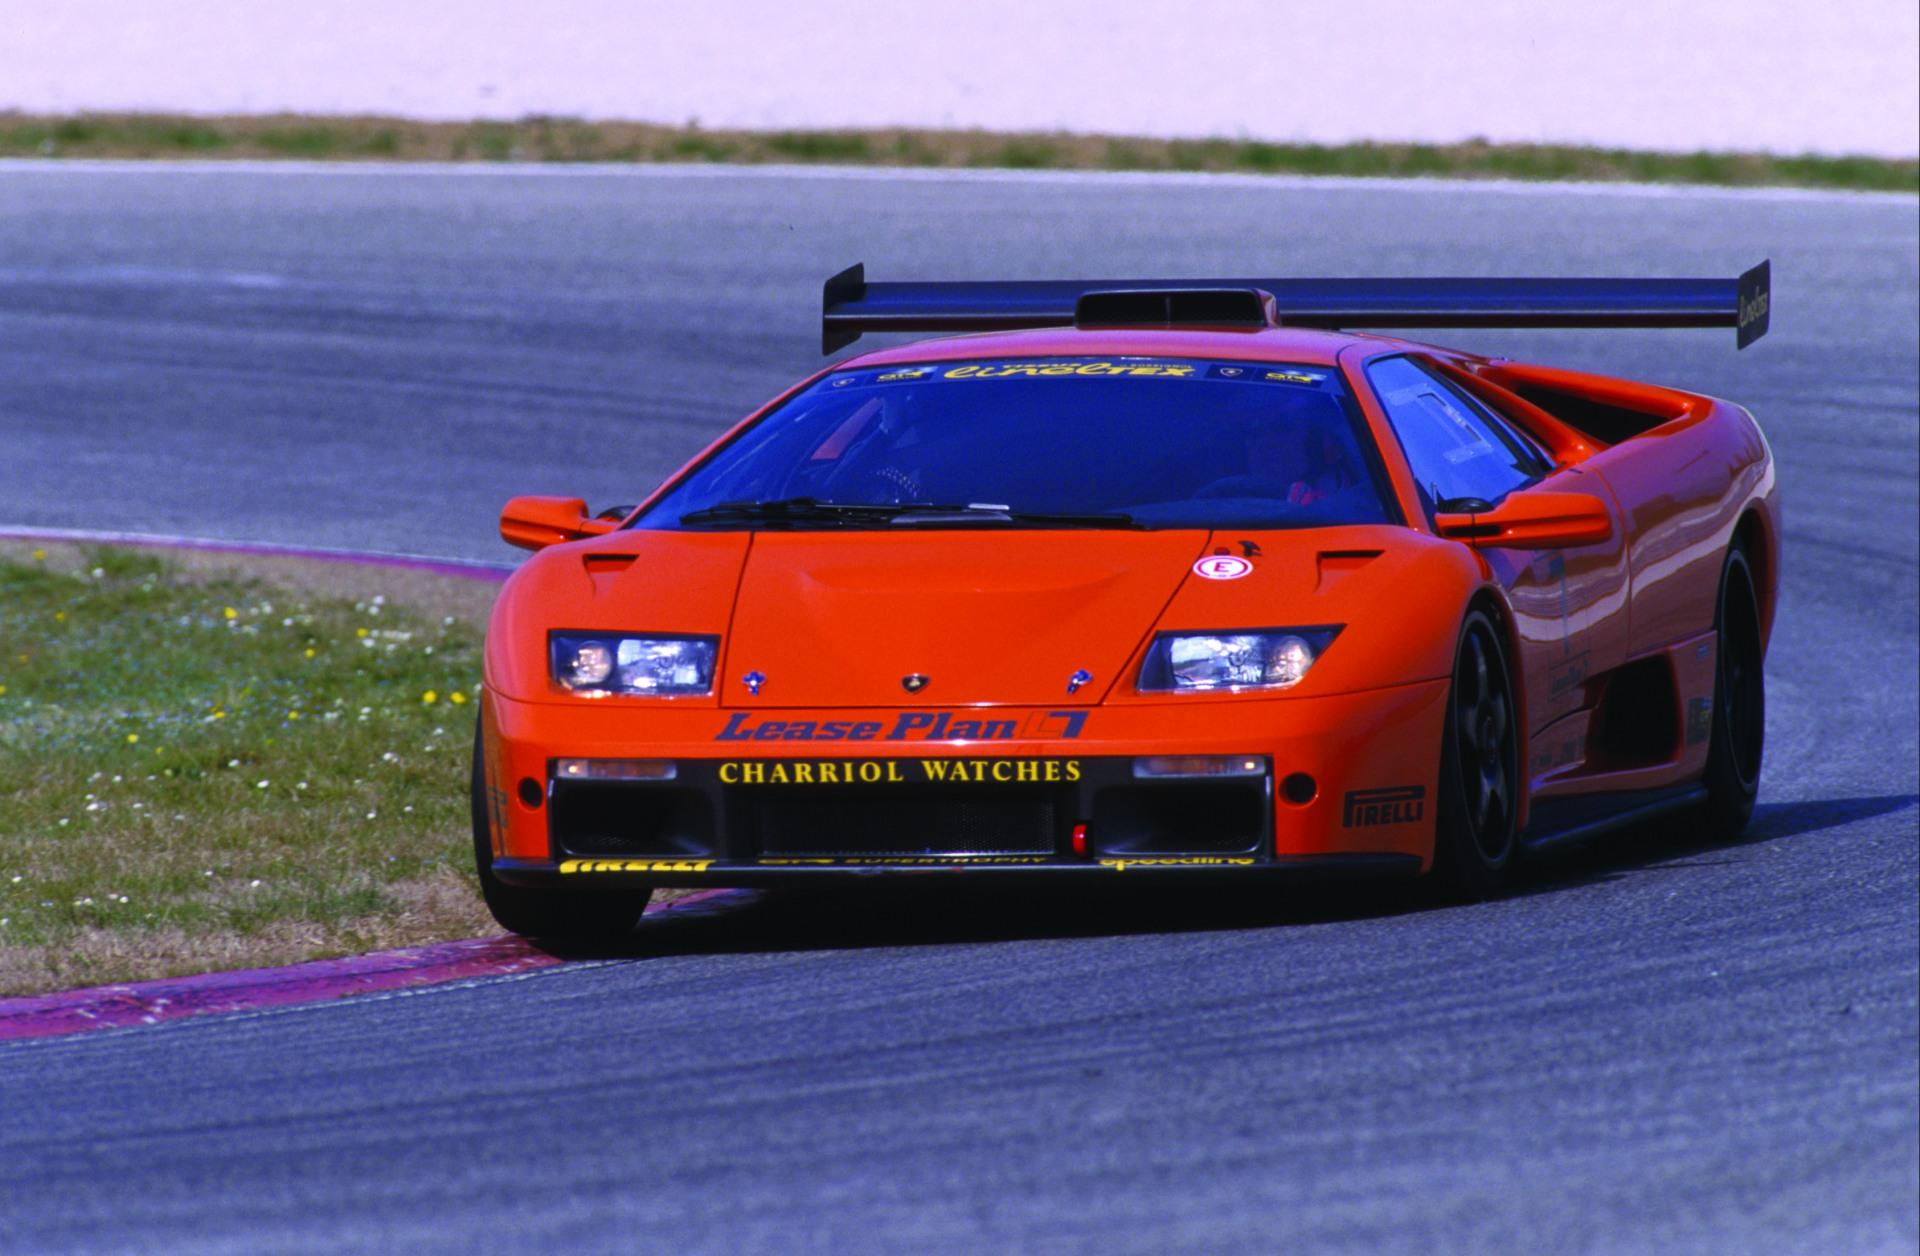 2000 Lamborghini Diablo Gtr Wallpapers Hd Drivespark